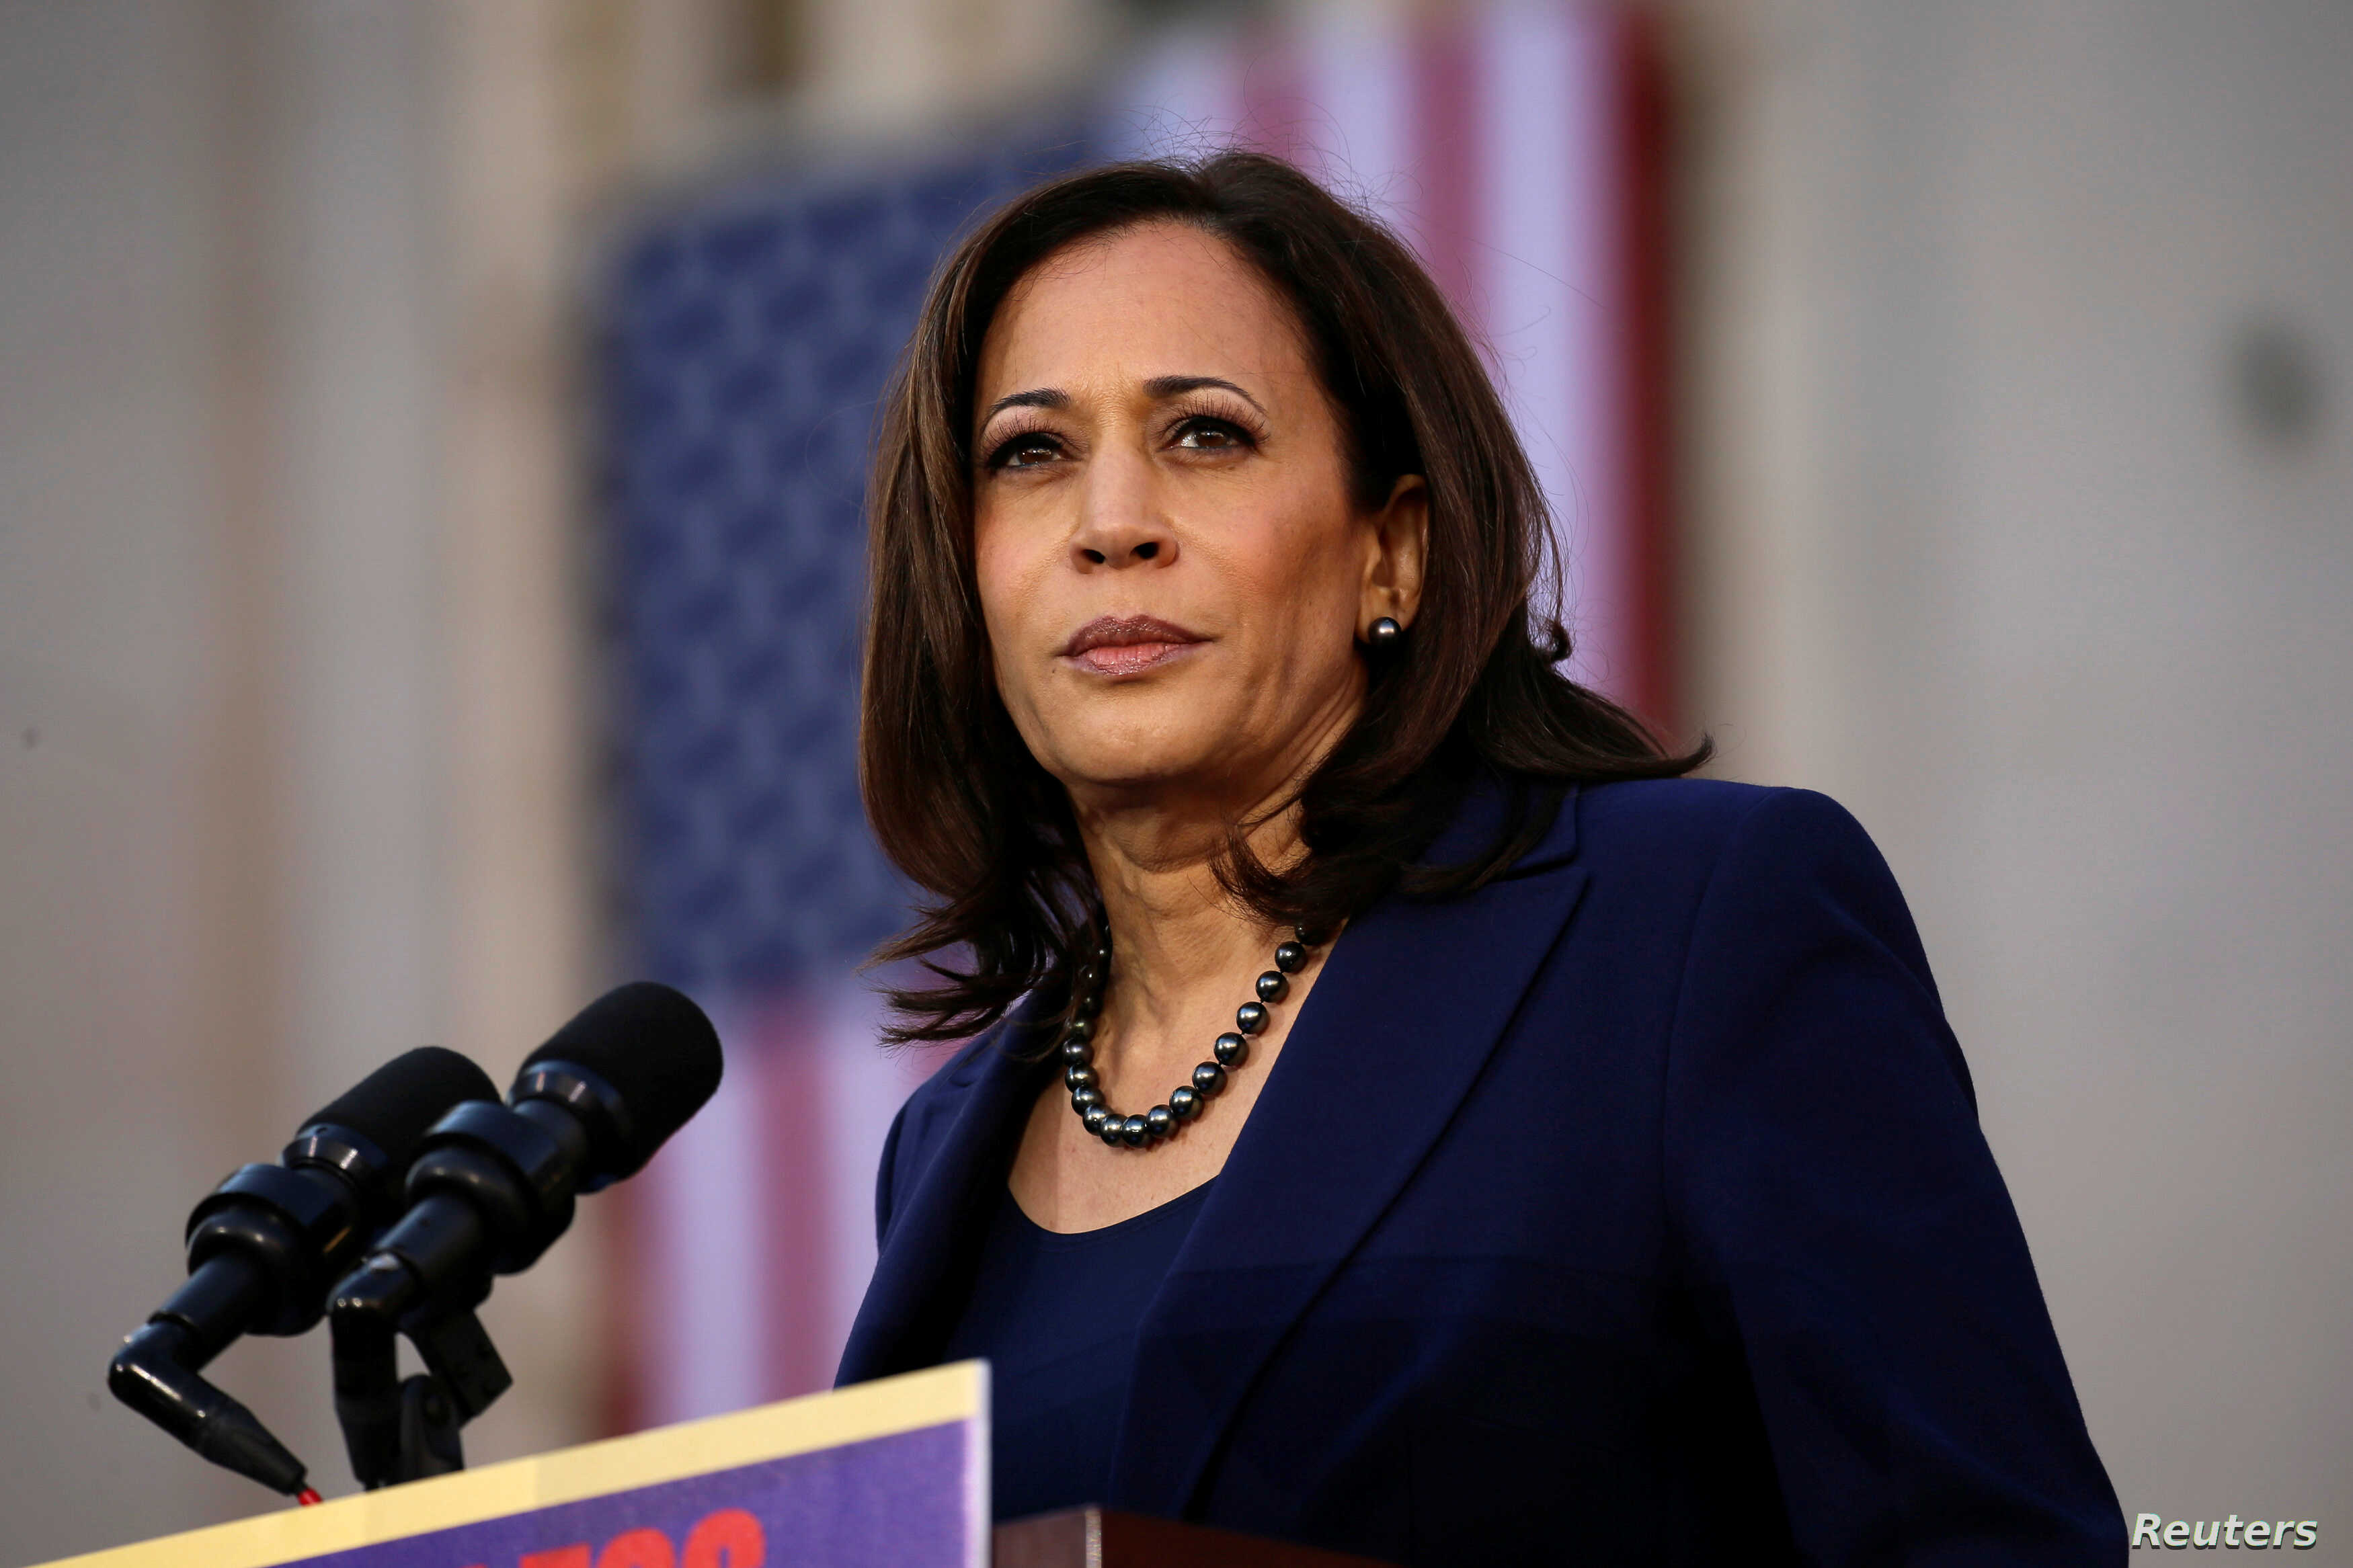 U.S. Senator Kamala Harris launches her campaign for President